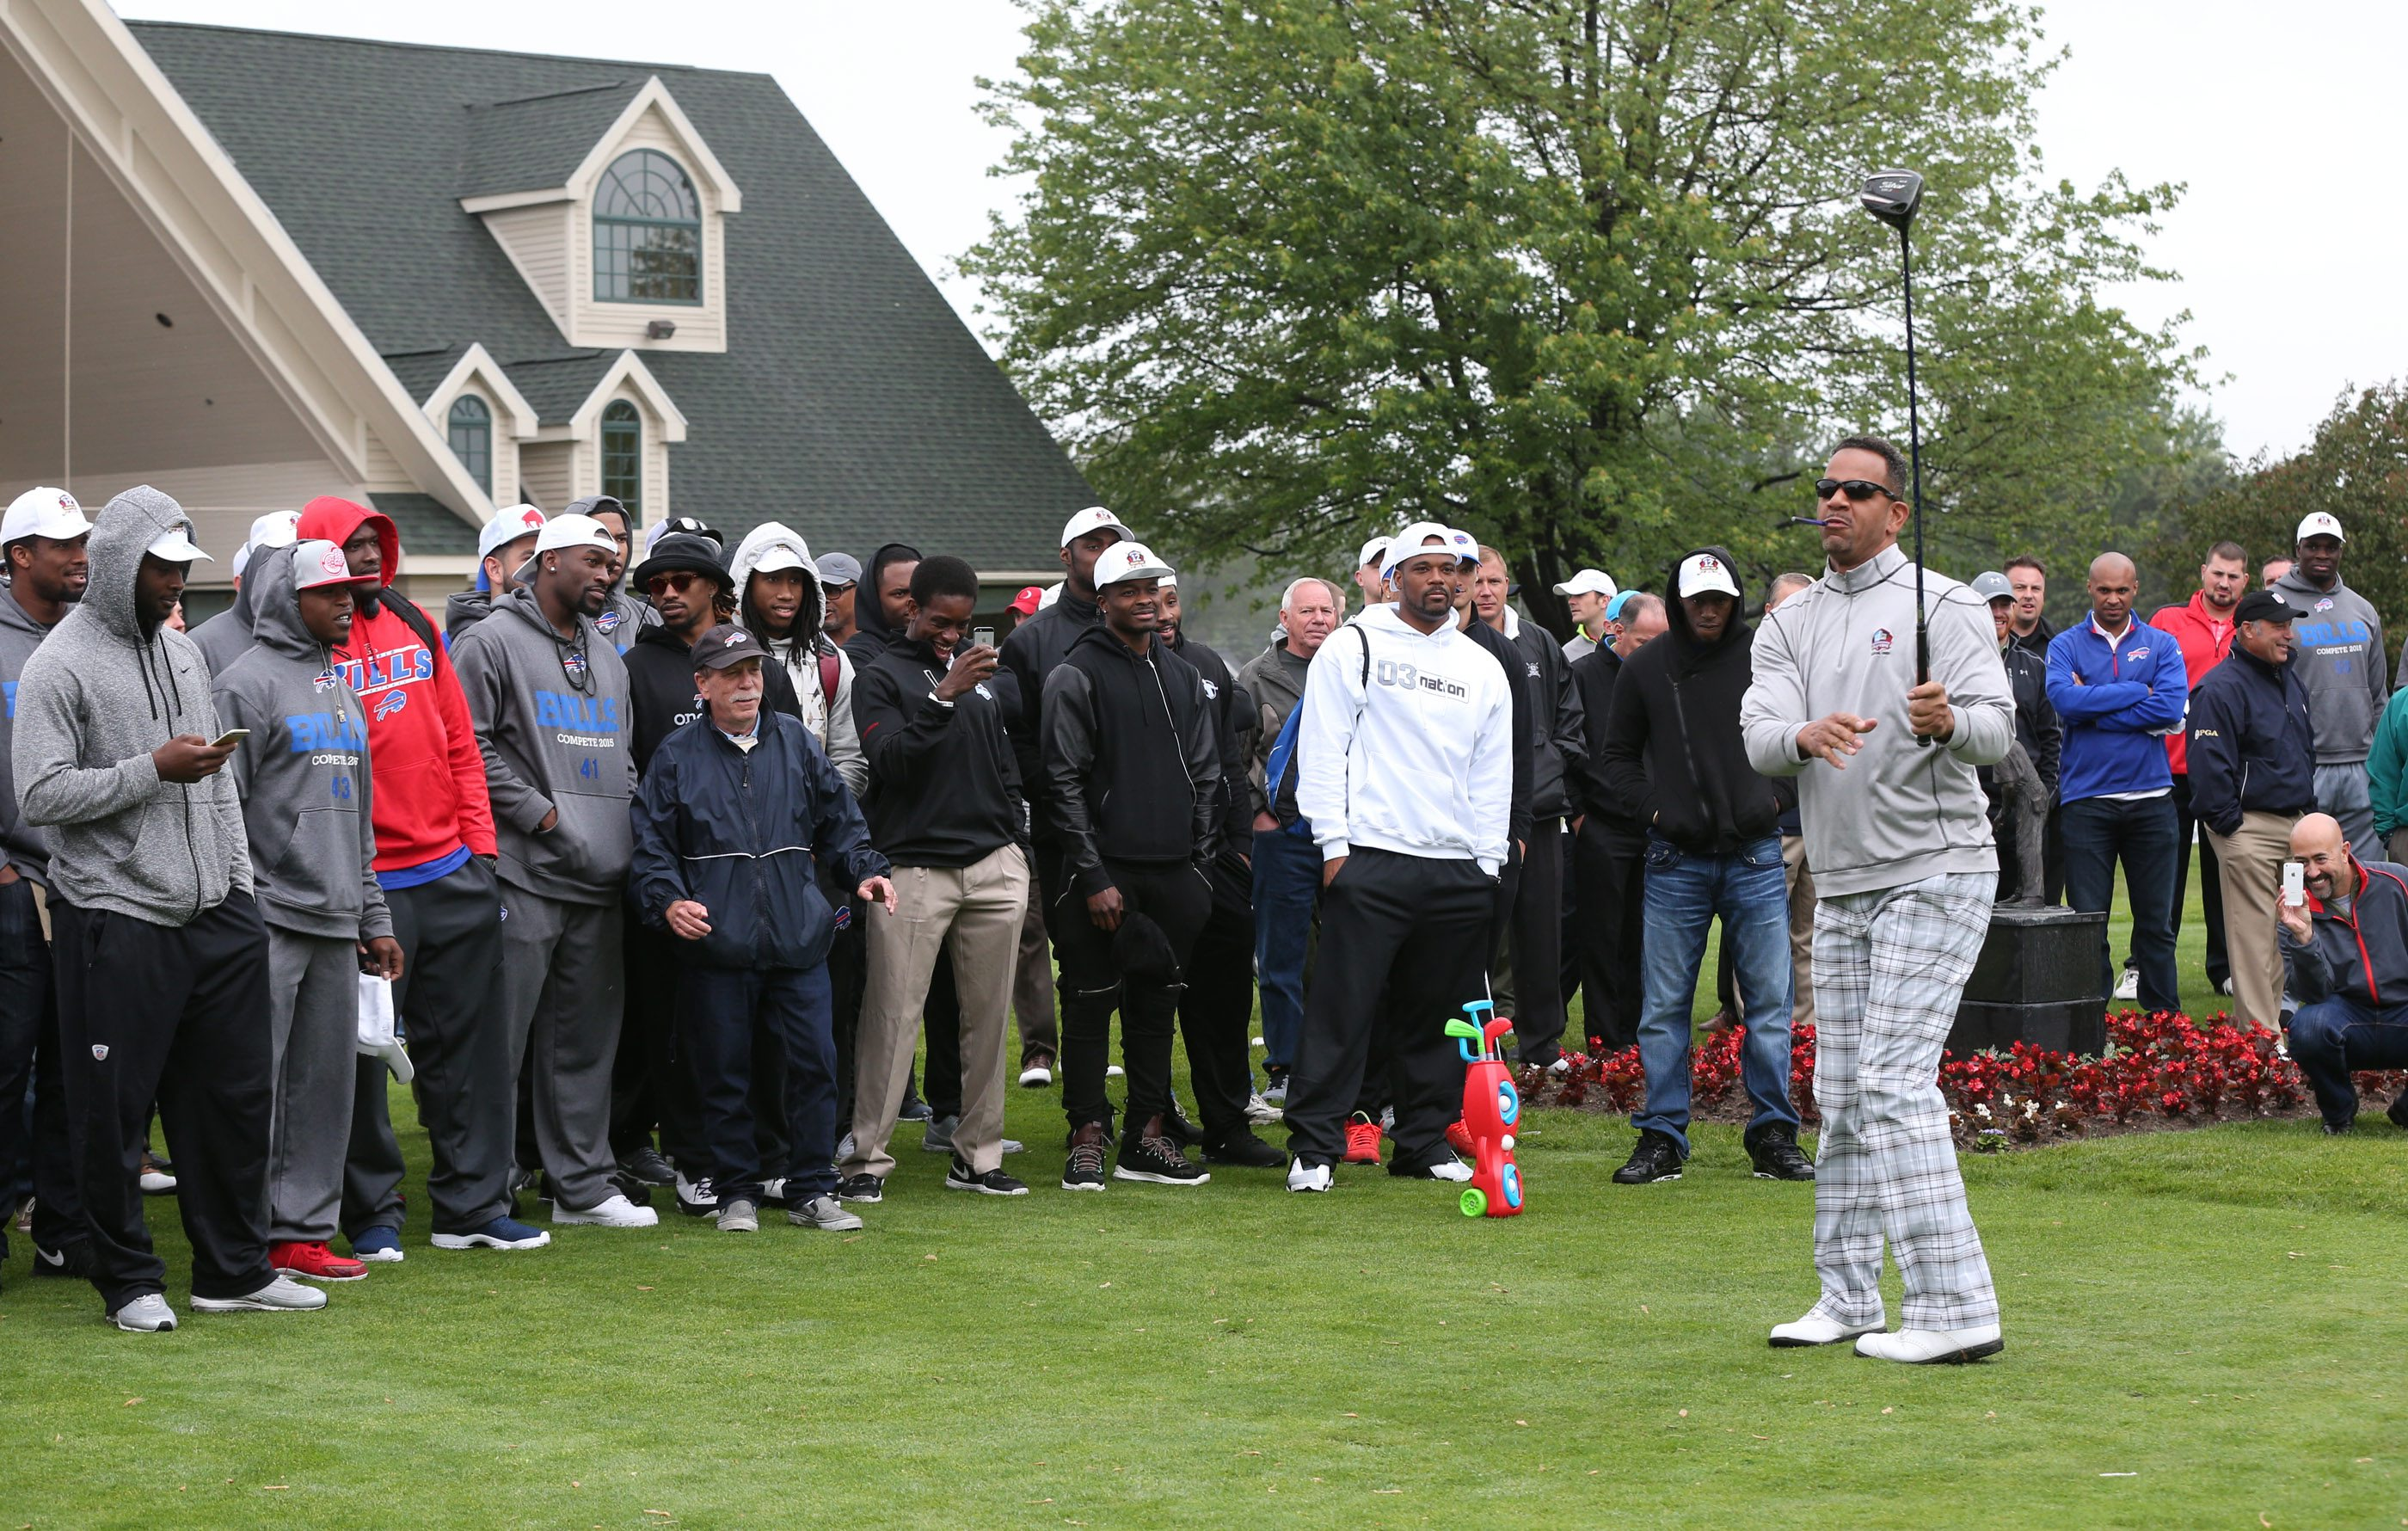 Andre Reed hits a shot off the tee at Jim Kelly's 29th Celebrity Classic golf tournament at Terry Hills Golf Course in Batavia,NY on Monday, June 1, 2015.  (James P. McCoy/ Buffalo News)